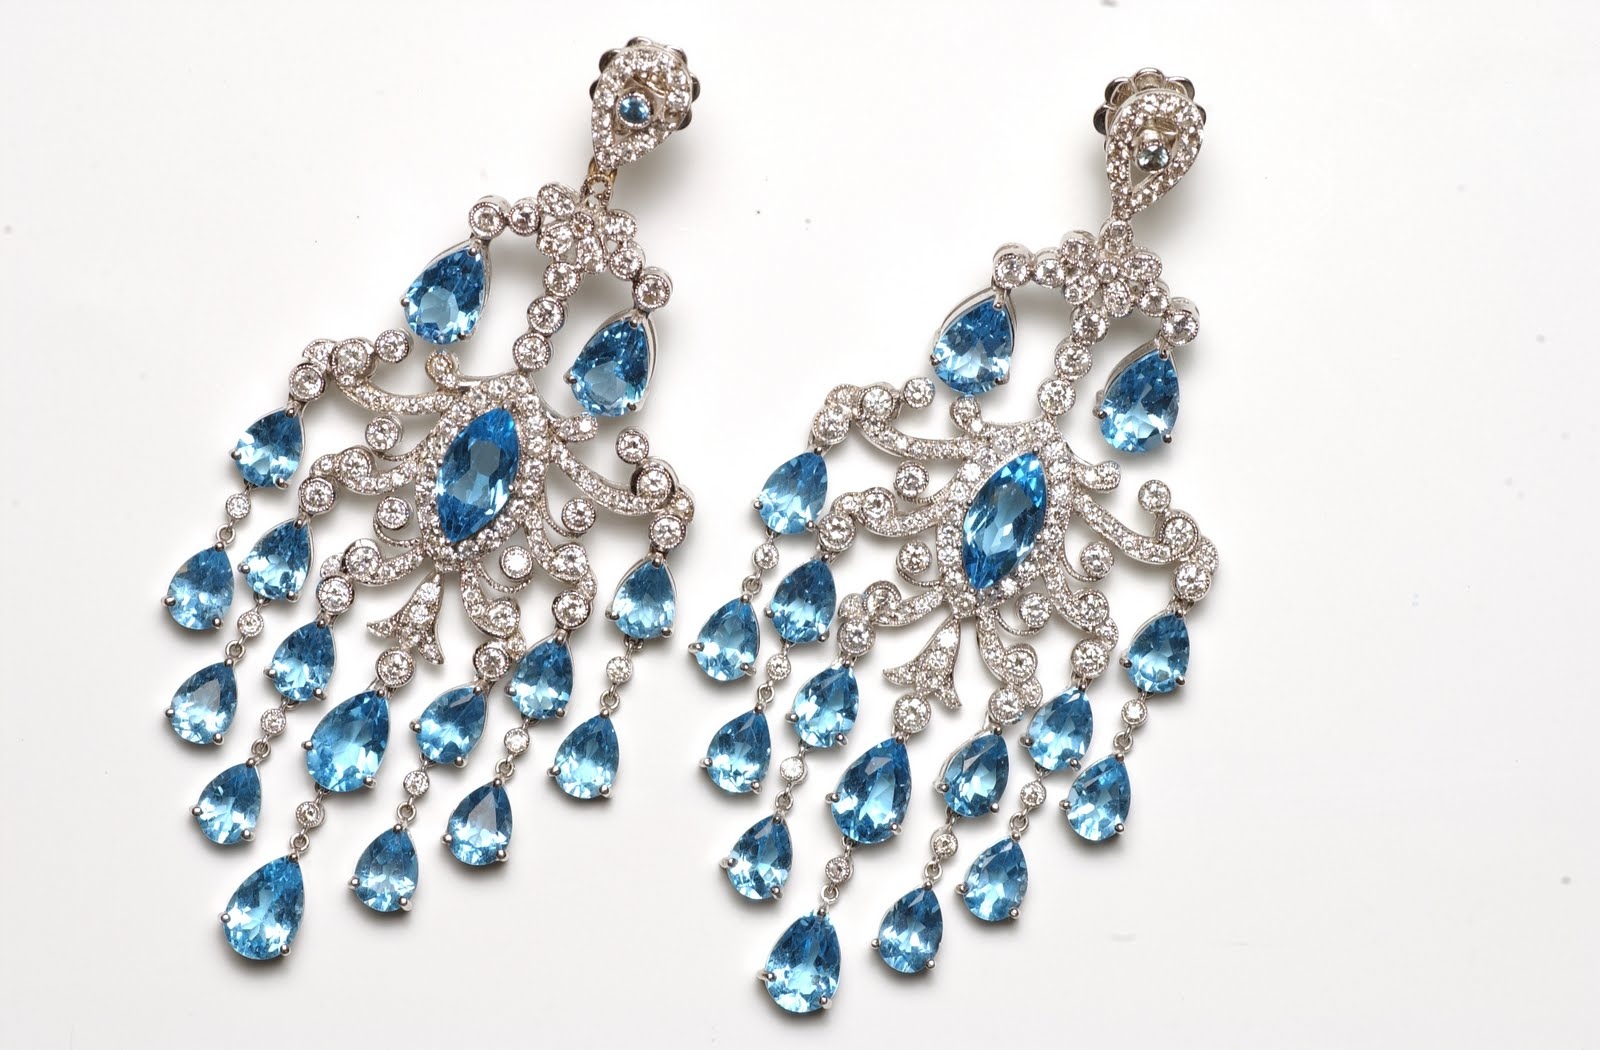 Red white and blue daniella kronfle magnificent chandelier style blue topaz and diamond earrings aloadofball Image collections